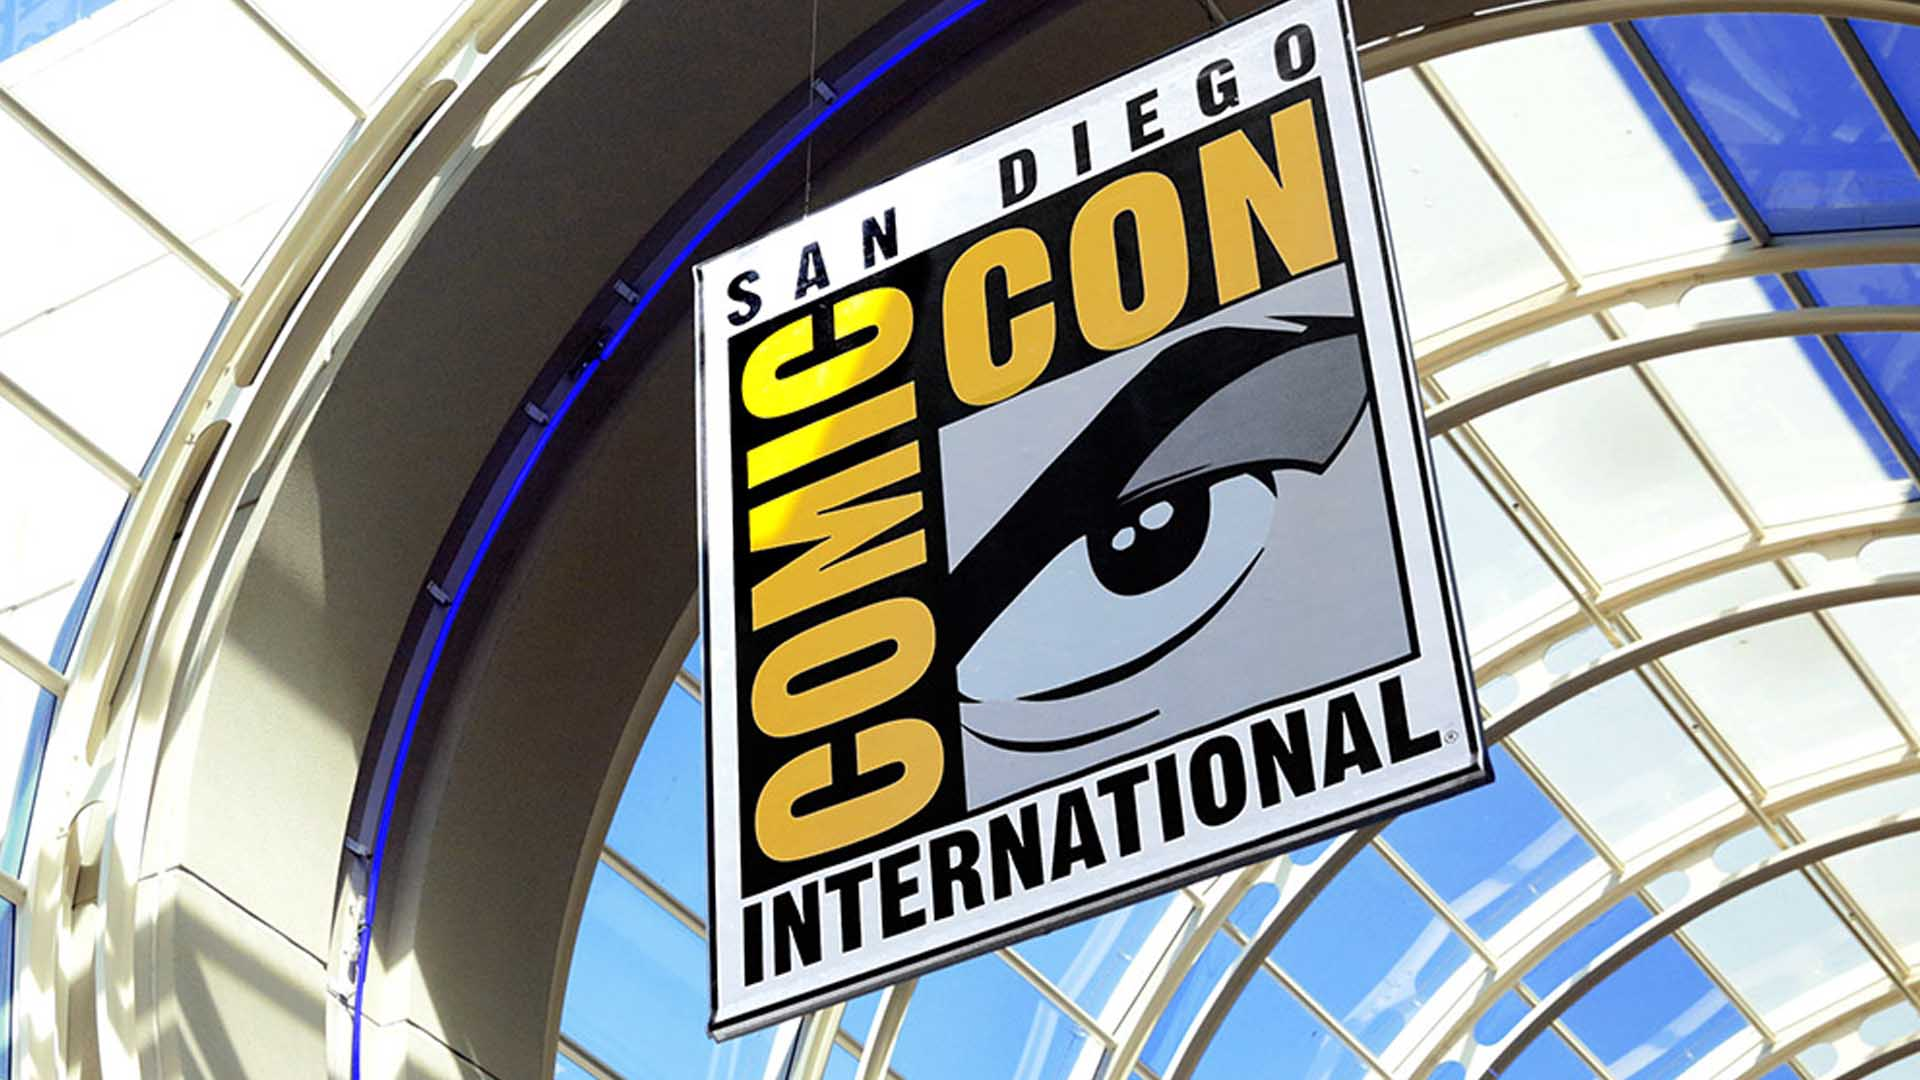 San Diego Comic-Con joins COVID-19 cancellation list